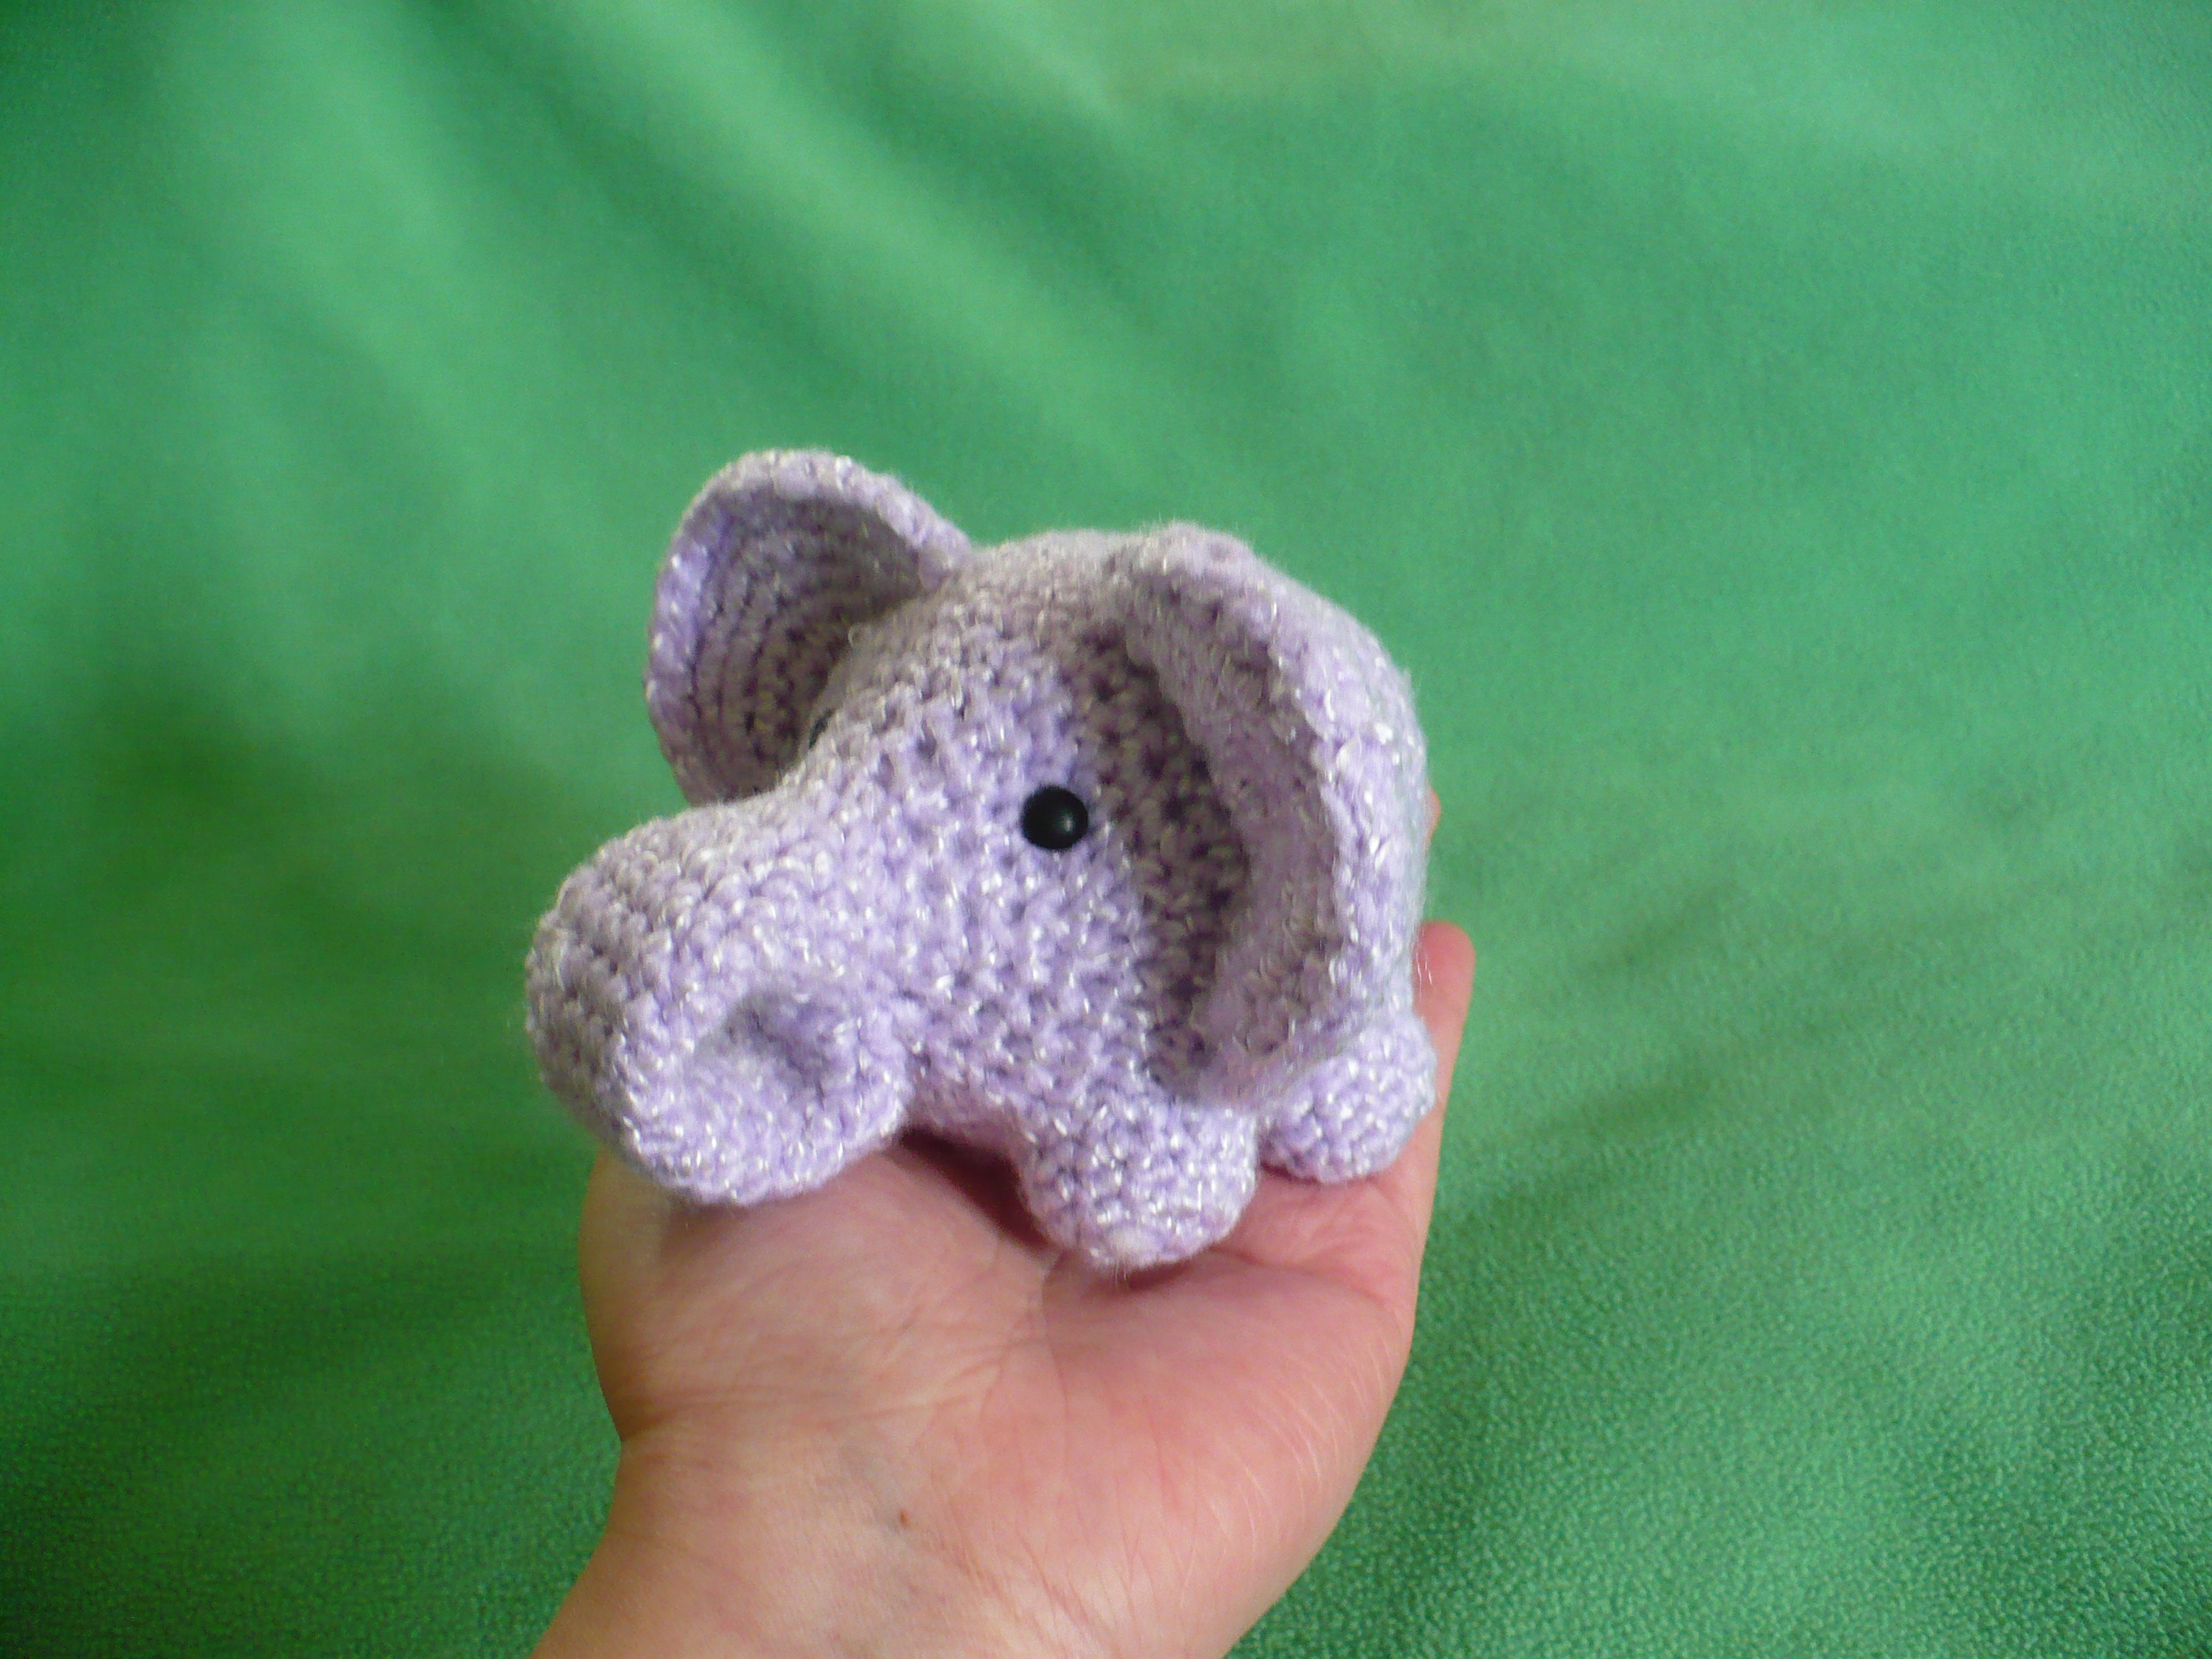 Crochet Elephant Inspirational Amigurumi Of Amazing 49 Models Crochet Elephant